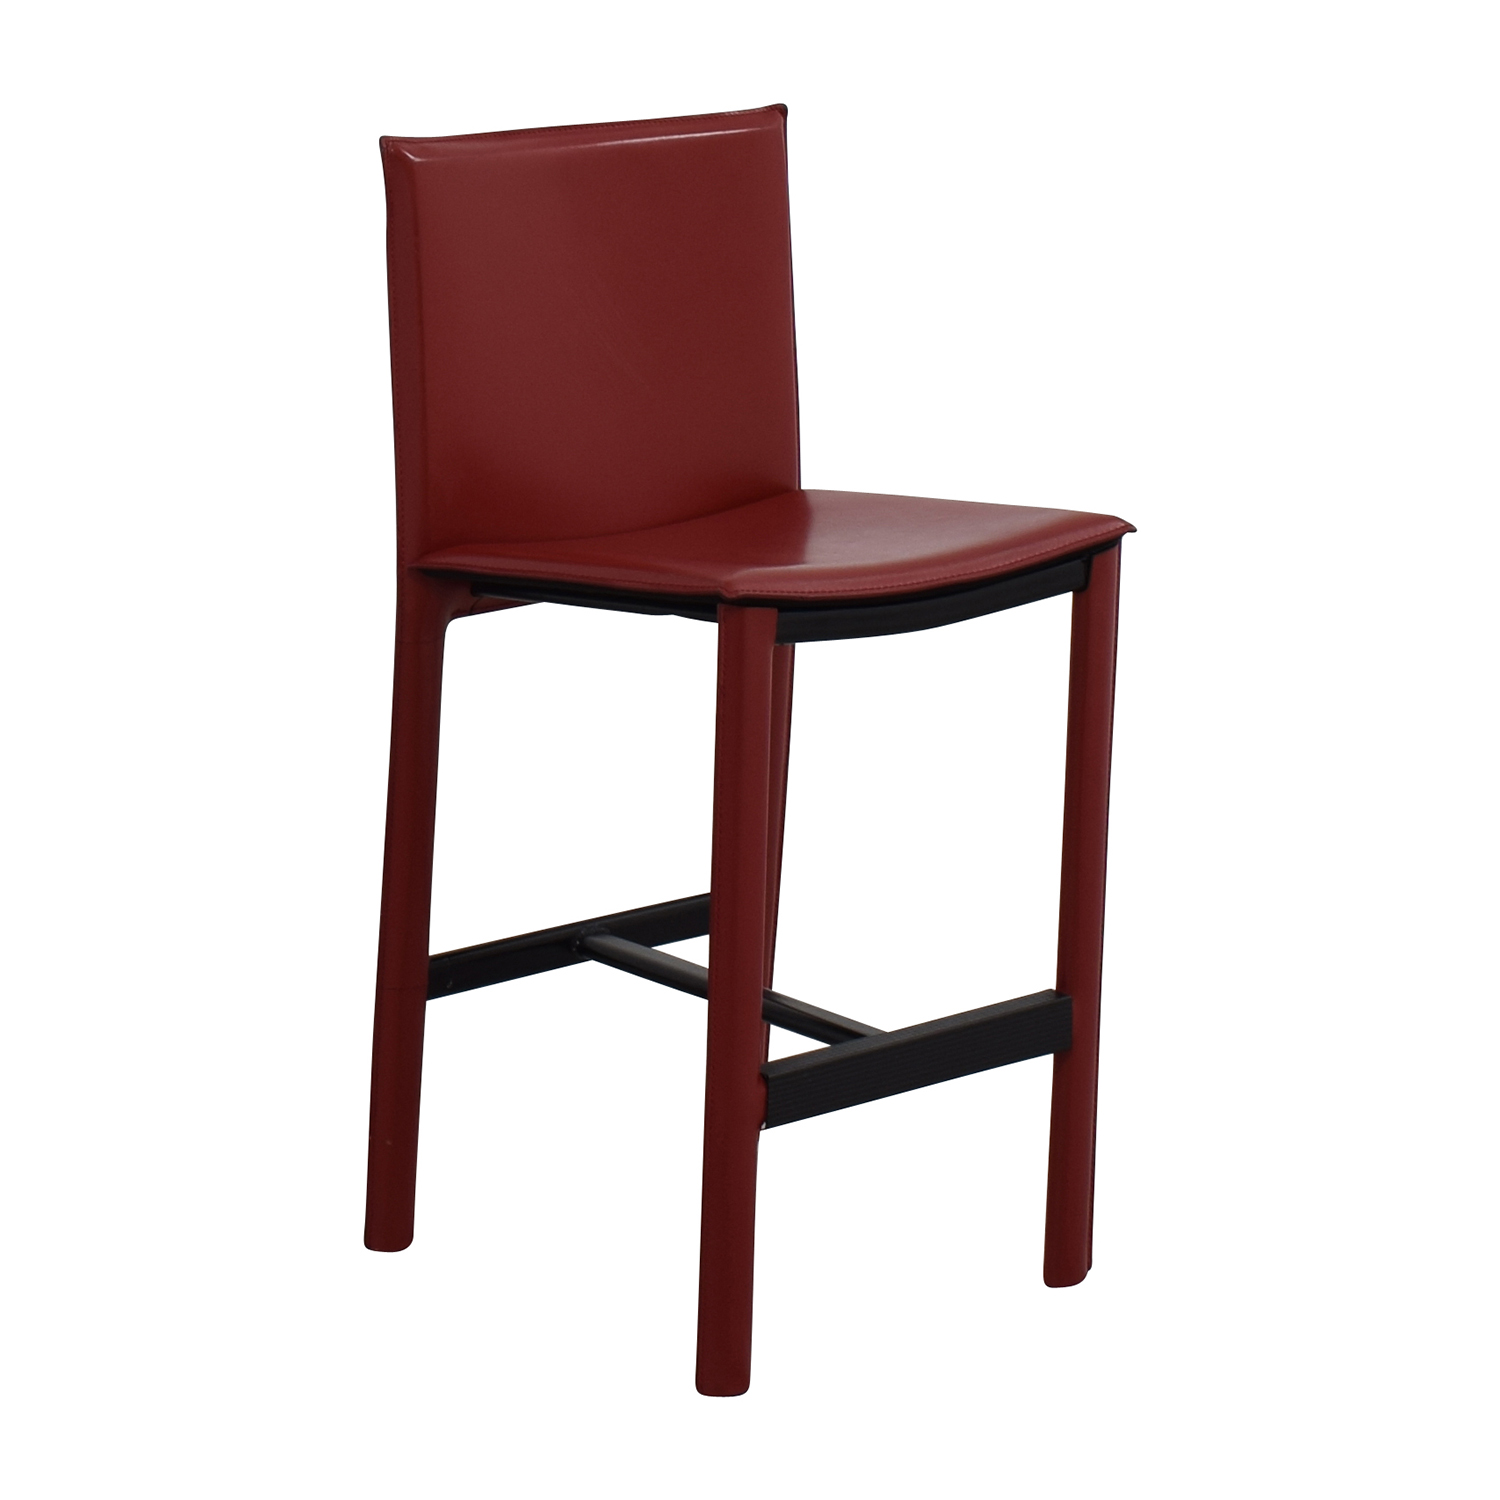 Marvelous 90 Off Room Board Room Board Sava Bar Stool In Red Leather Chairs Gmtry Best Dining Table And Chair Ideas Images Gmtryco